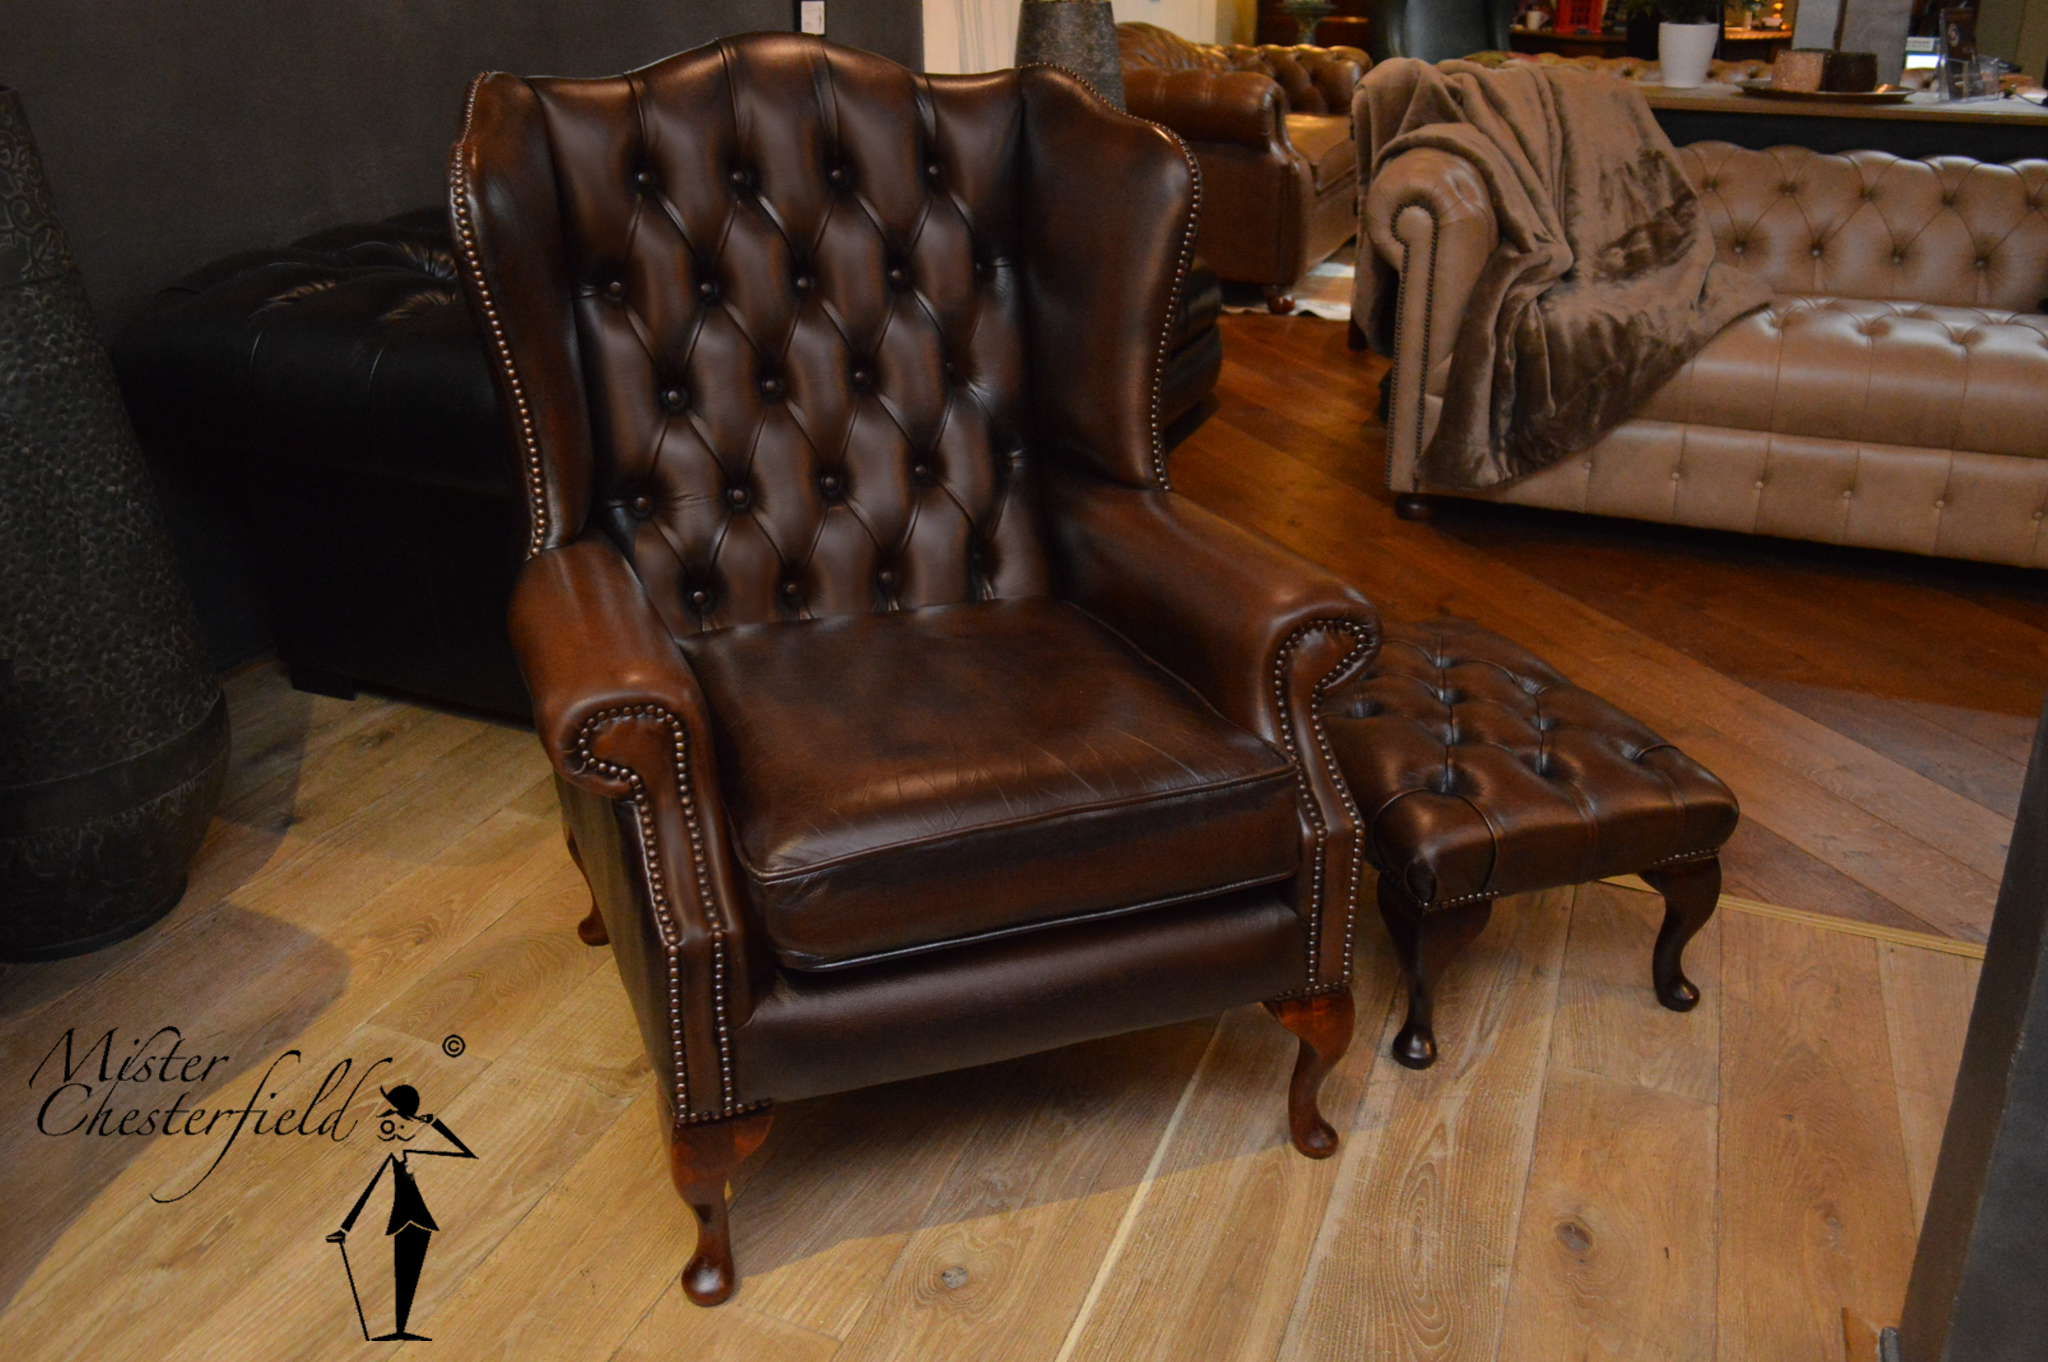 29 Chesterfield Queen Anne wing chairs in Antique brown (4x). queen_anne_wingchair_chesterfield & NR. 29 Chesterfield Queen Anne wing chairs in Antique brown (4x ...